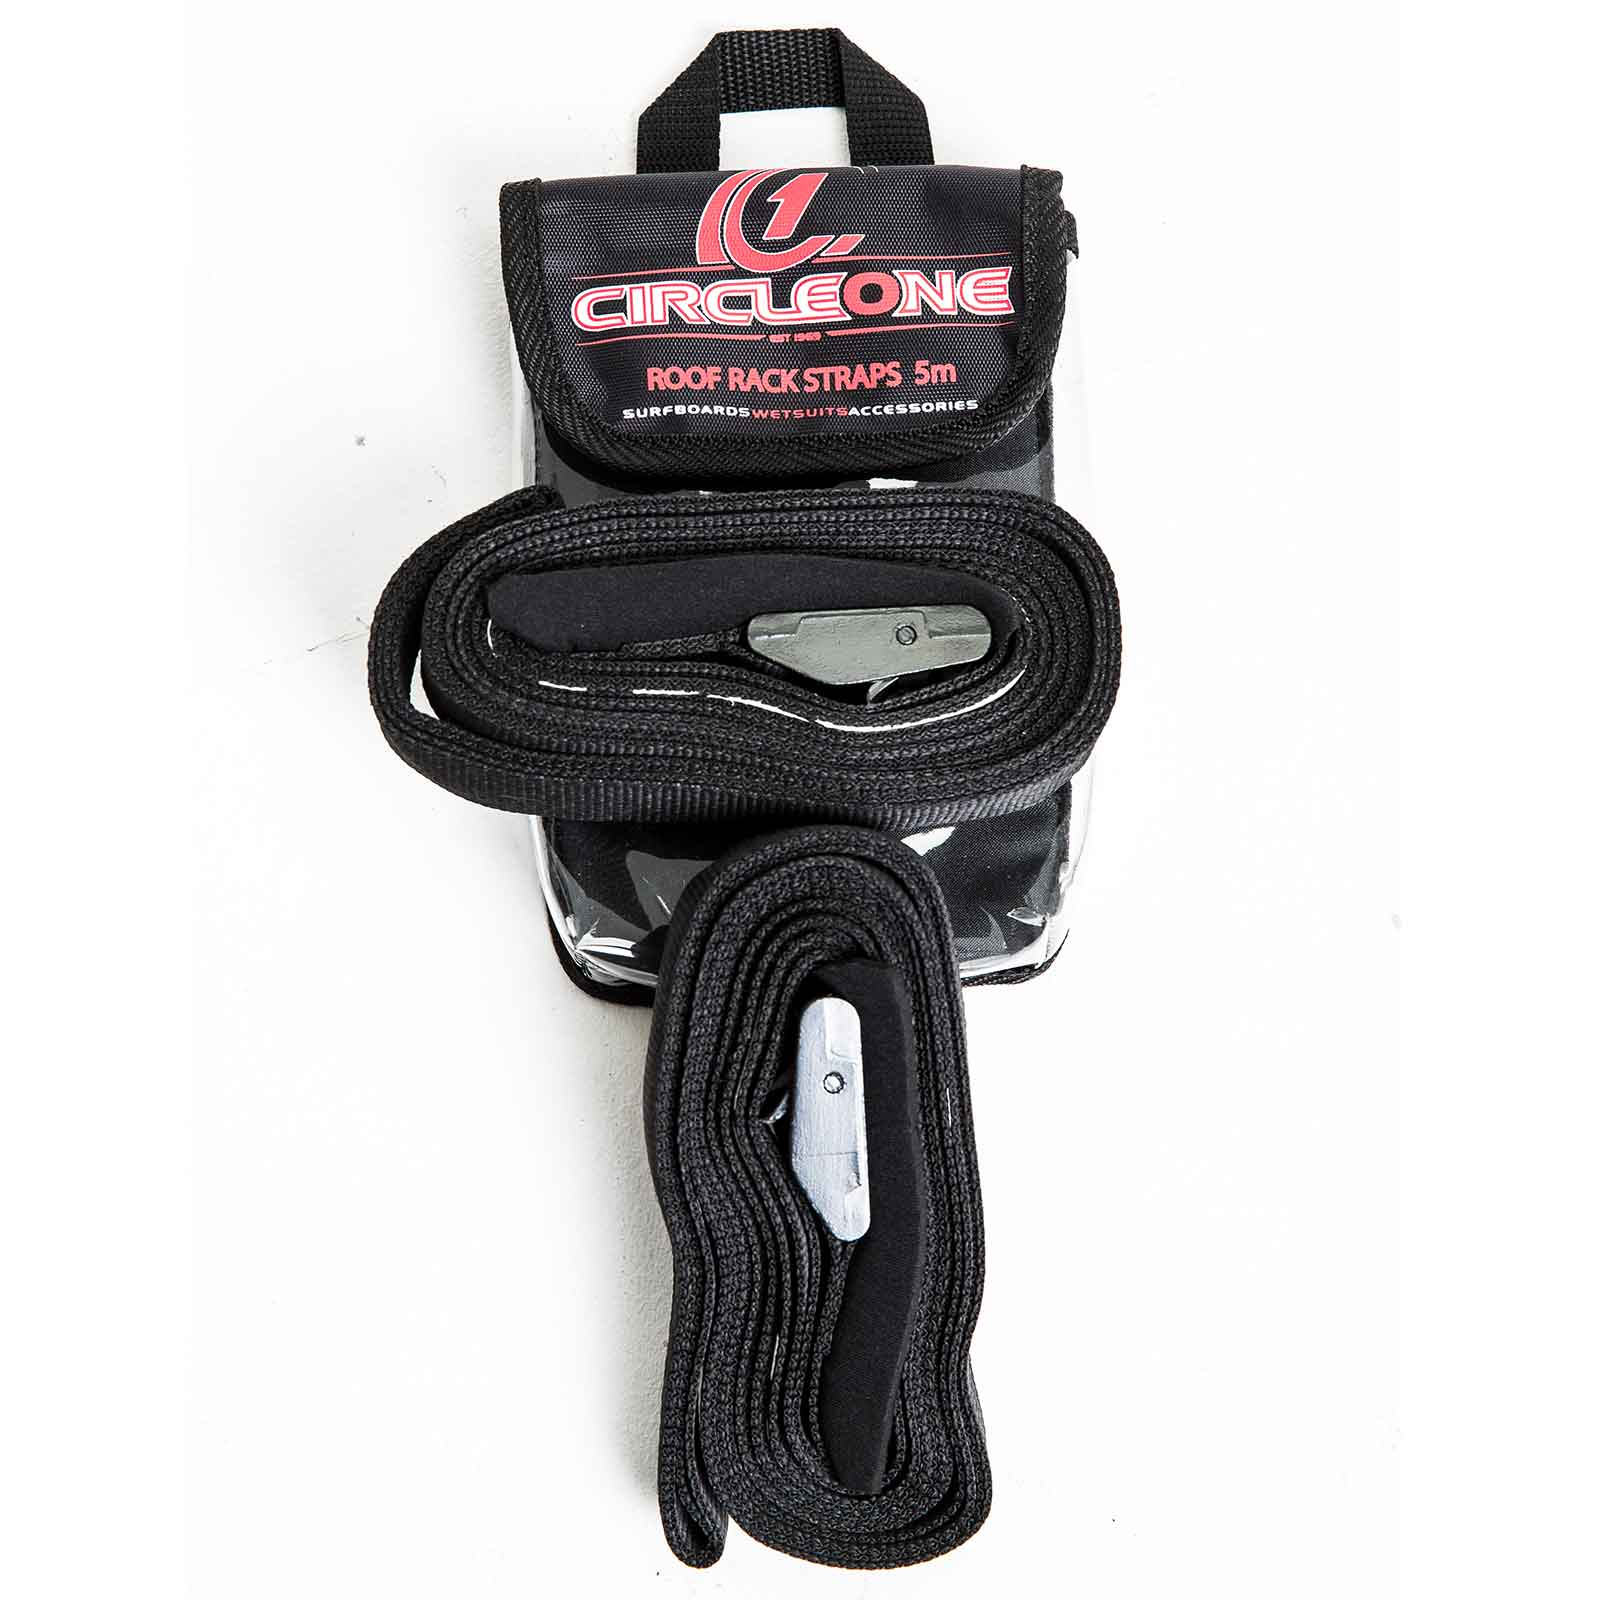 Roof Rack Straps 5 mtre